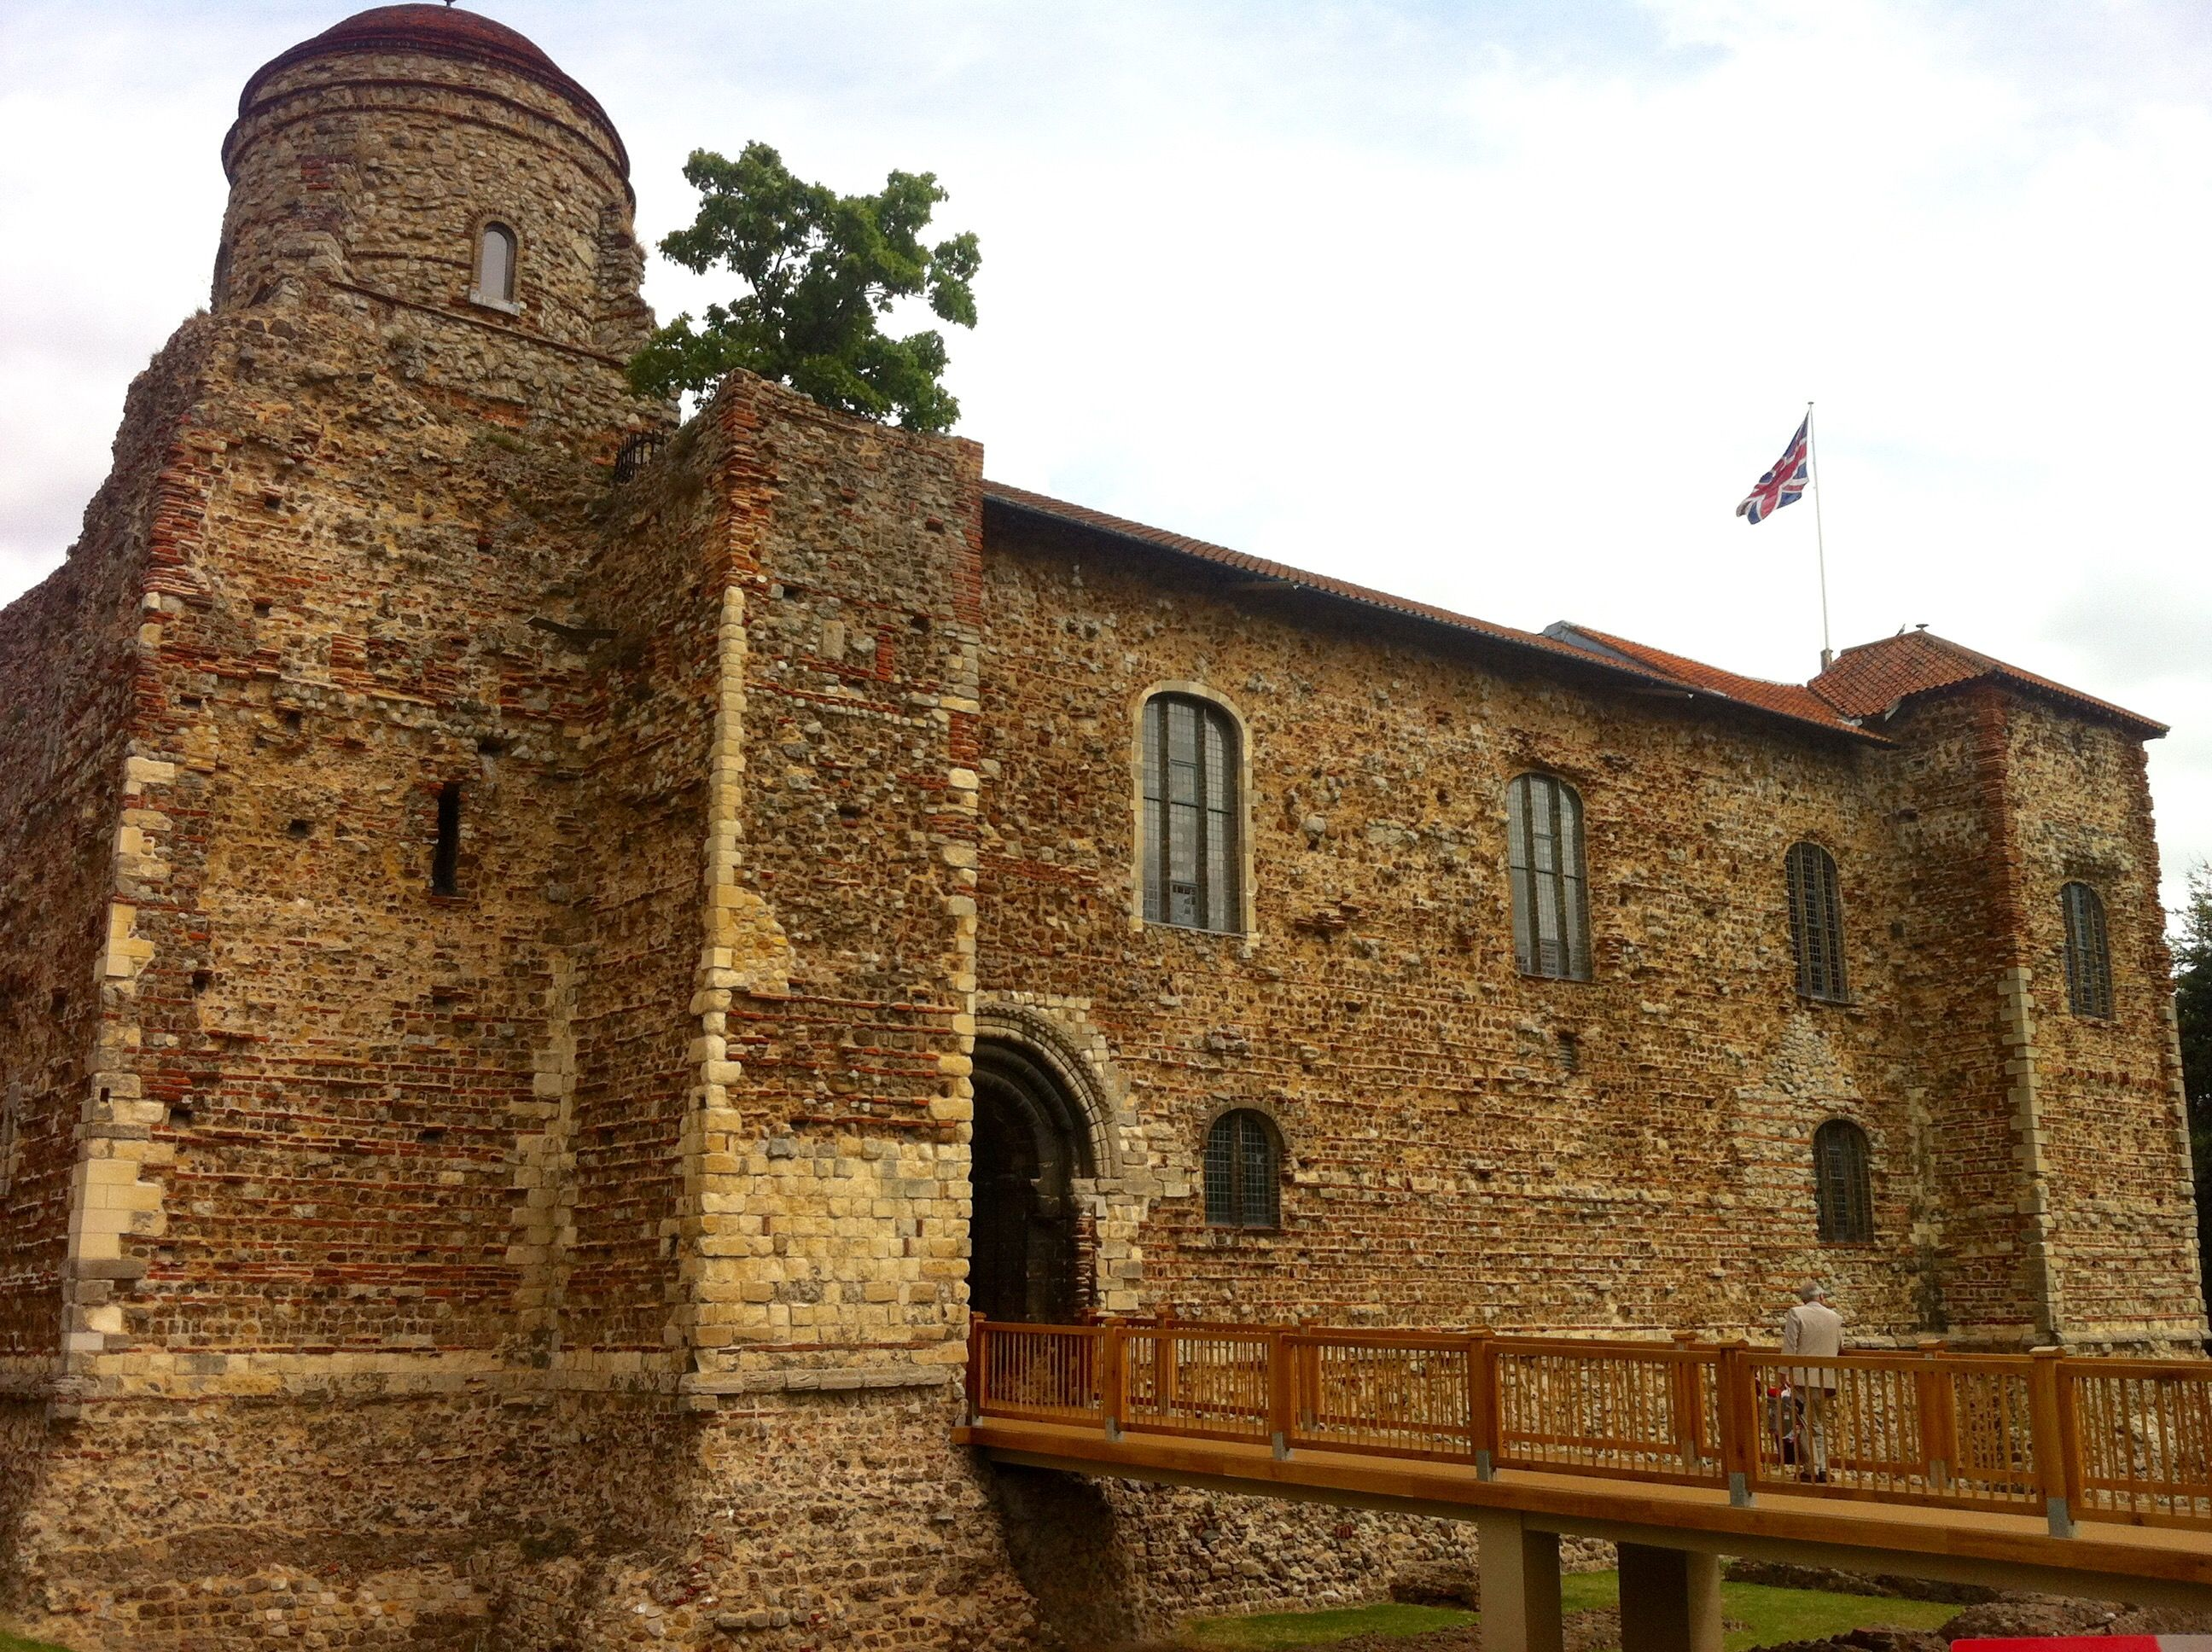 colchester castle uk 2015 about 1000 years old built on top of roman